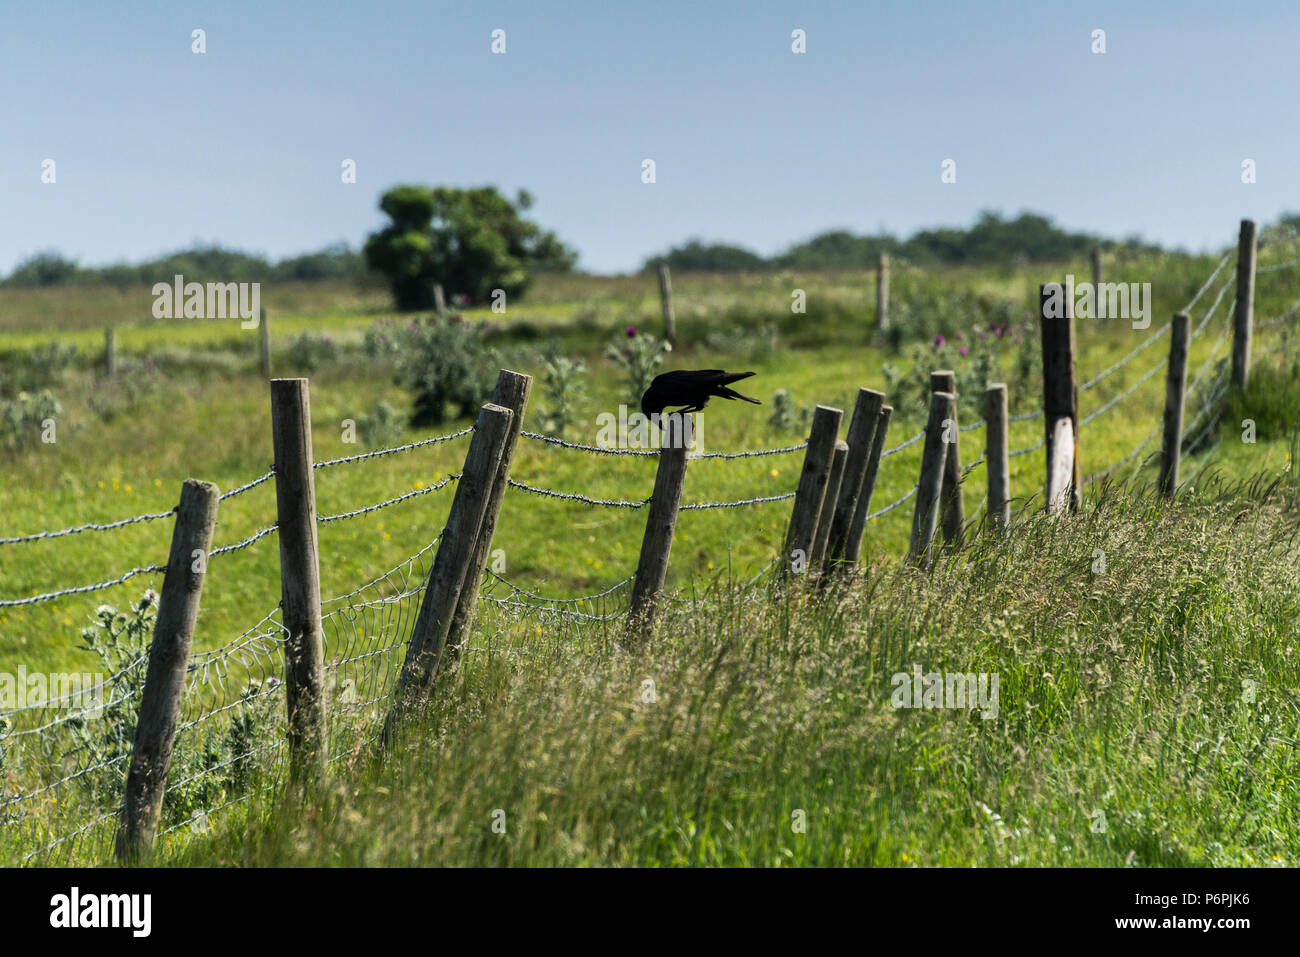 A carrion crow (Corvus corone) perching on a fence post in the Wiltshire Countryside - Stock Image